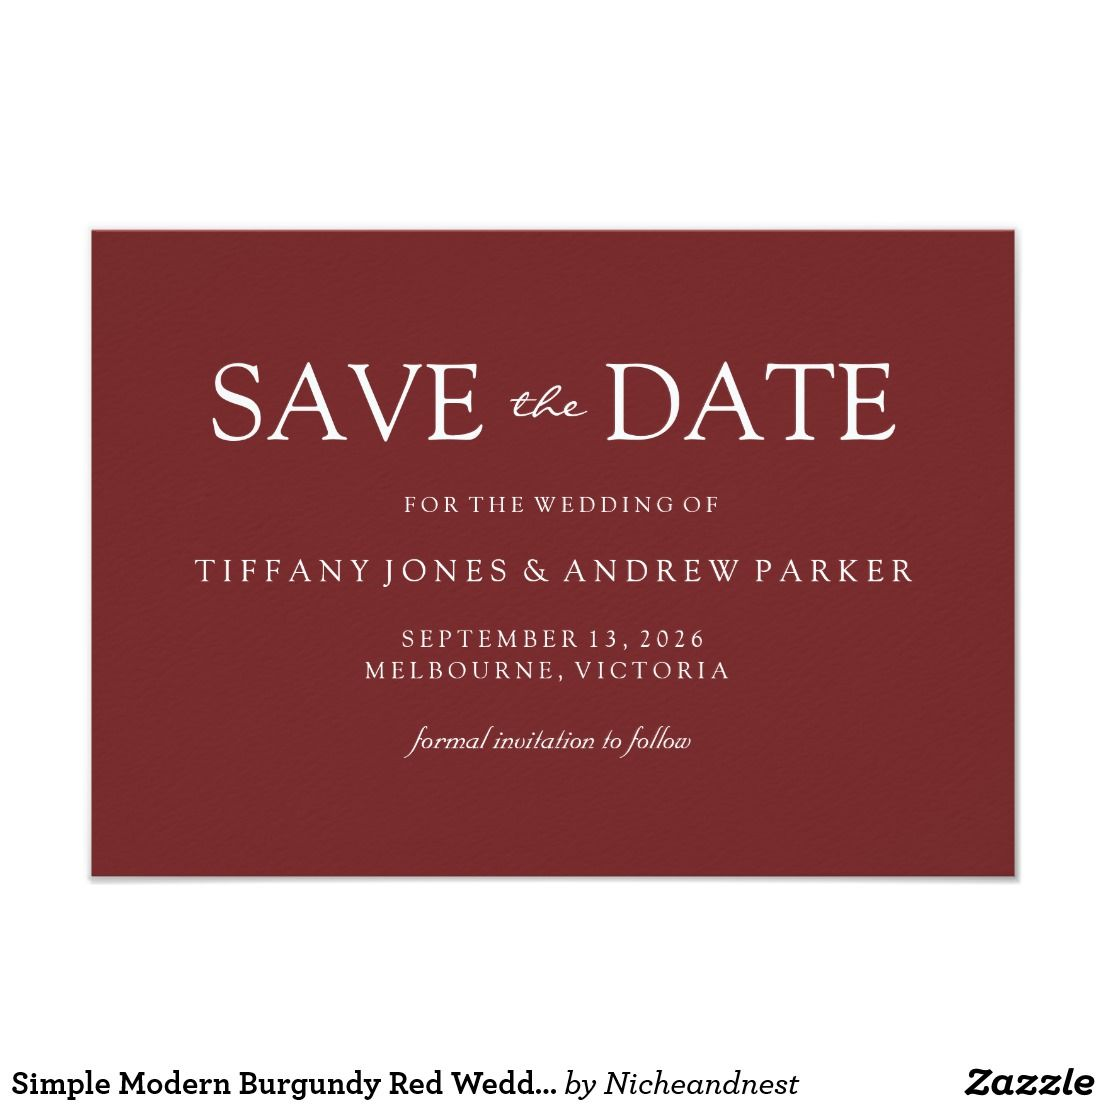 Simple Modern Burgundy Red Wedding Save the date | Wedding ...